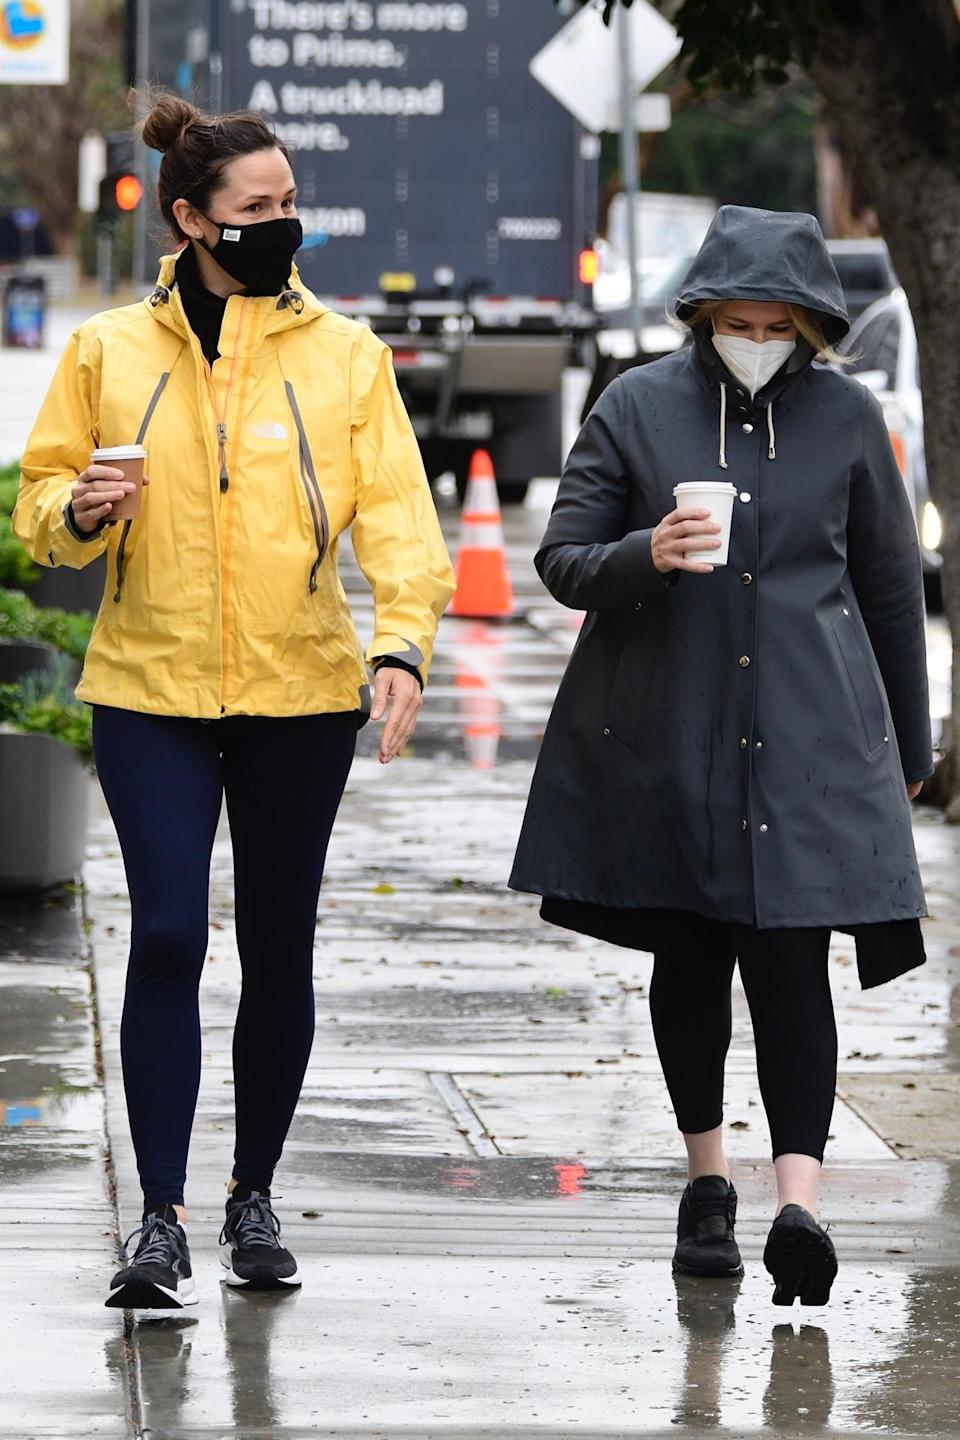 <p>Jennifer Garner was spotted picking up coffee with a friend and wearing a bright yellow rain jacket in Brentwood, California.</p>